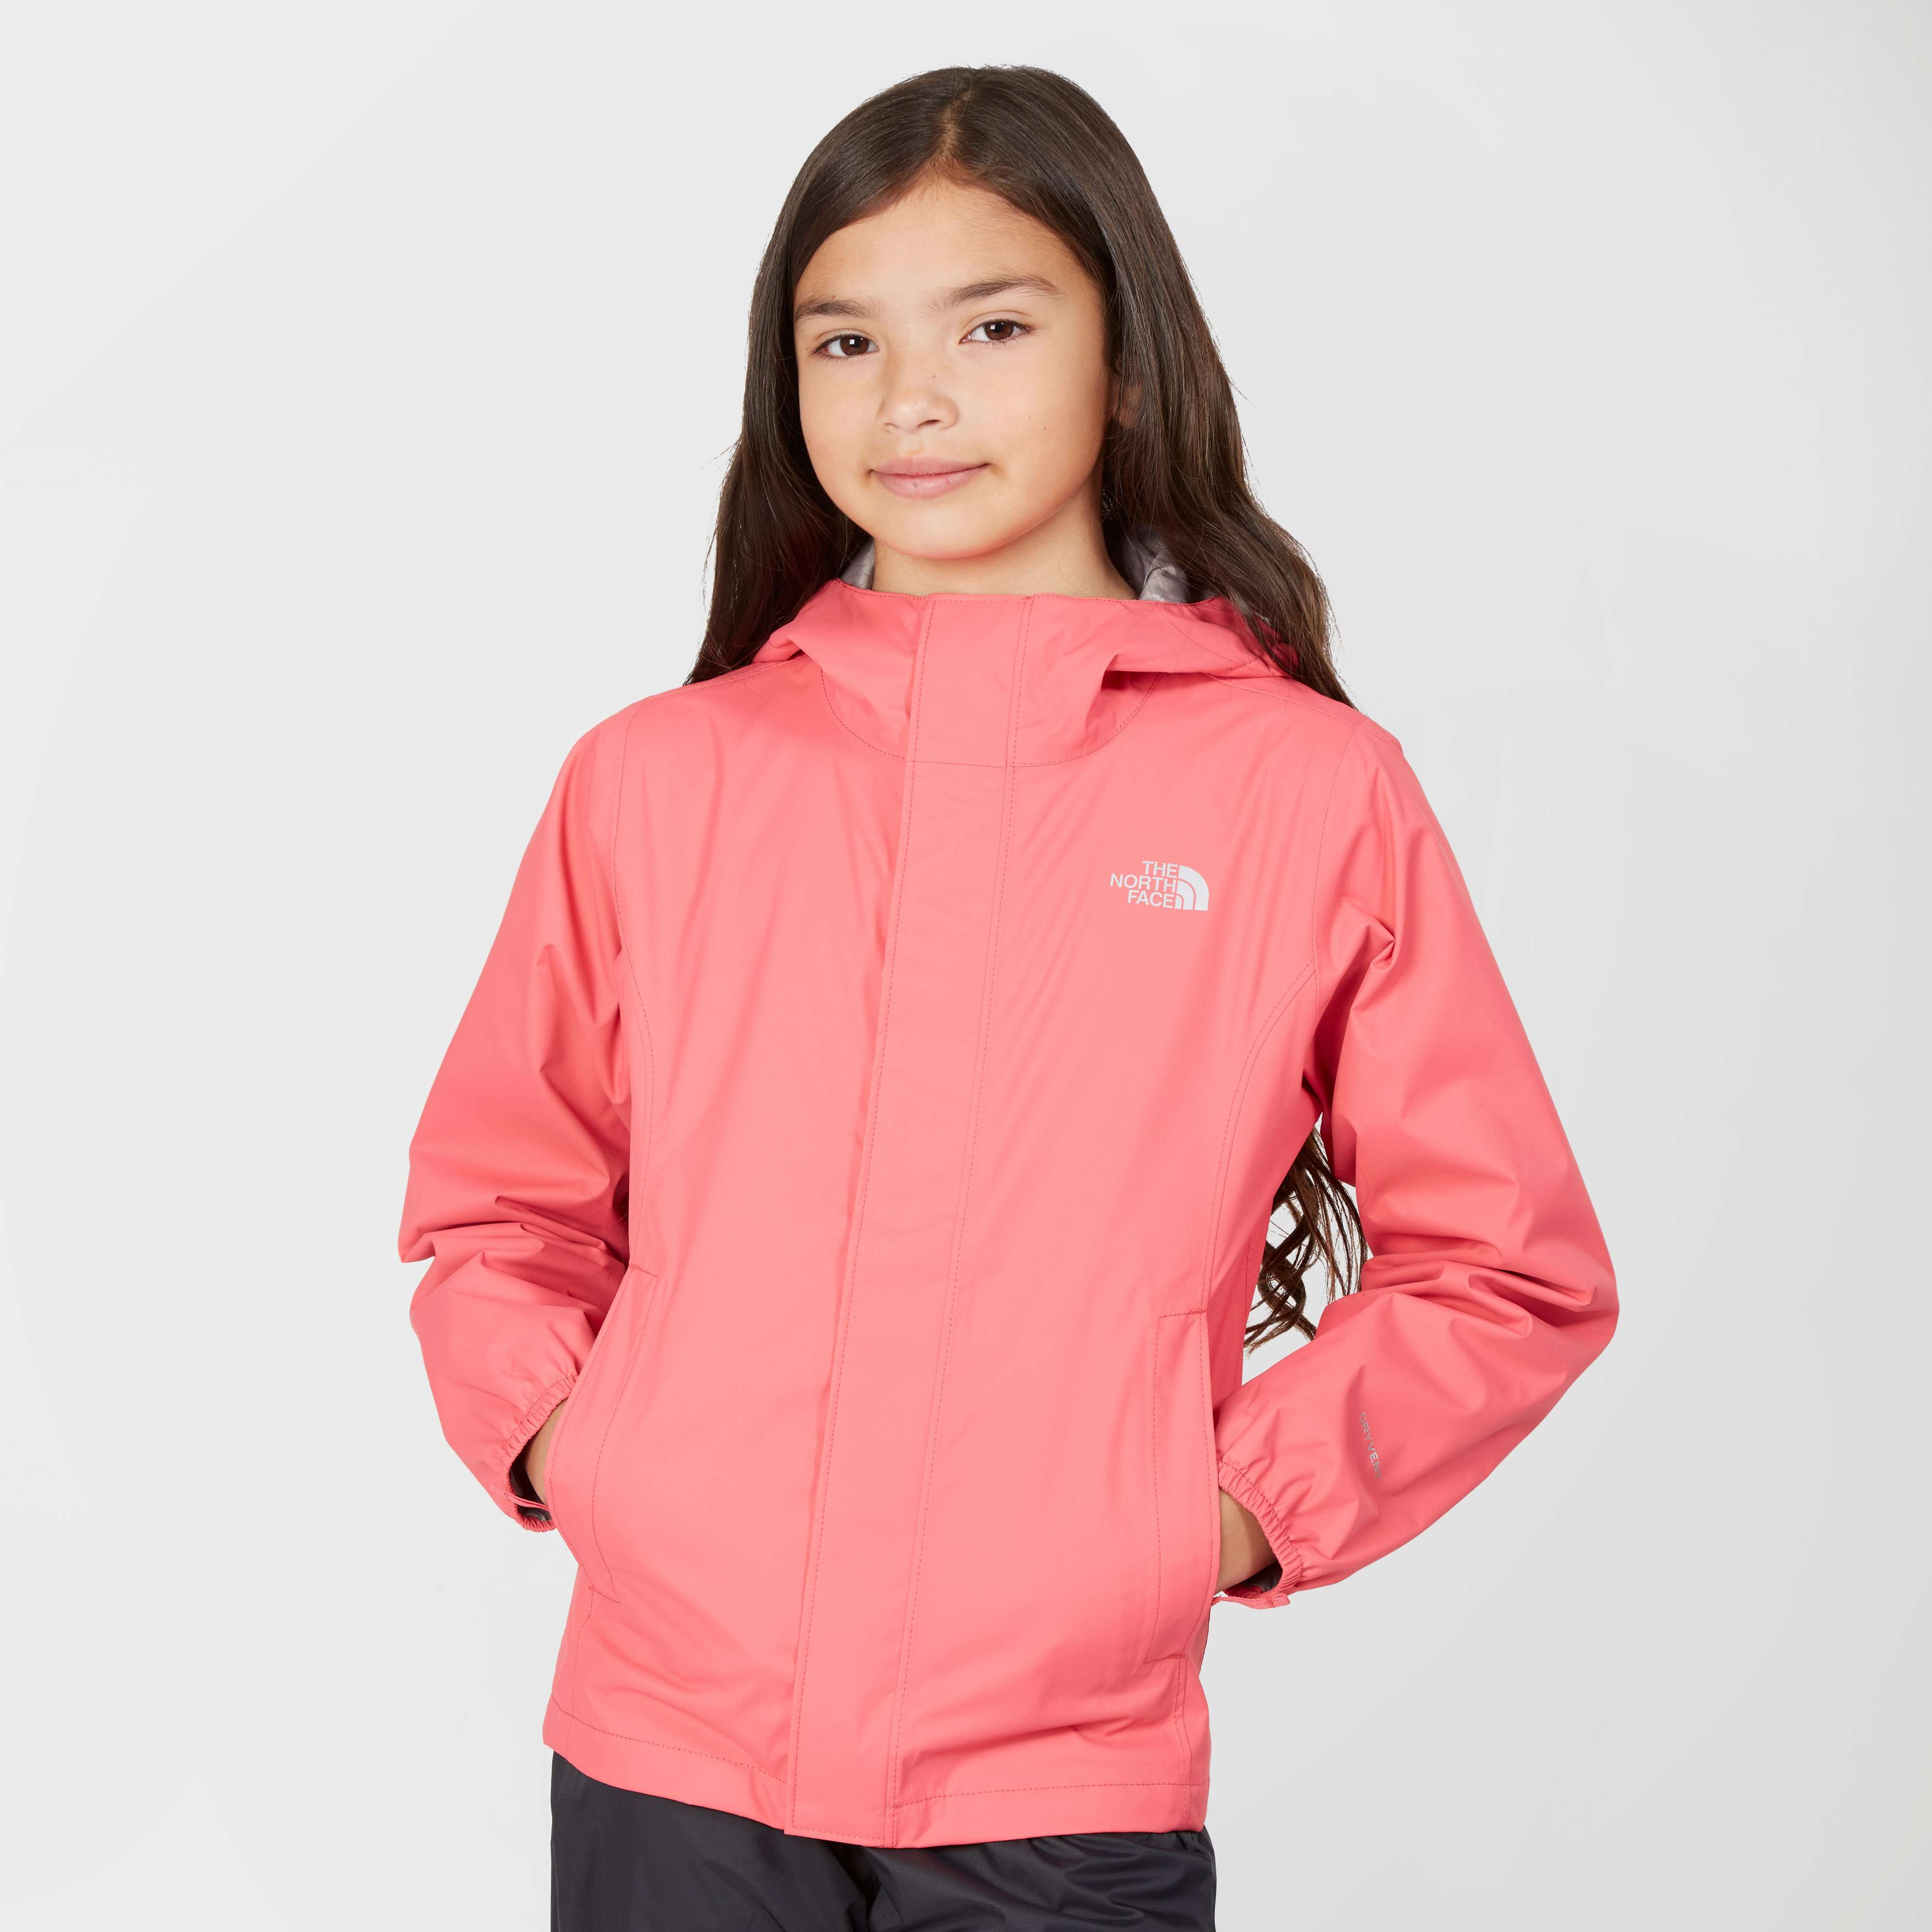 THE NORTH FACE Girls' Resolve Waterproof Jacket